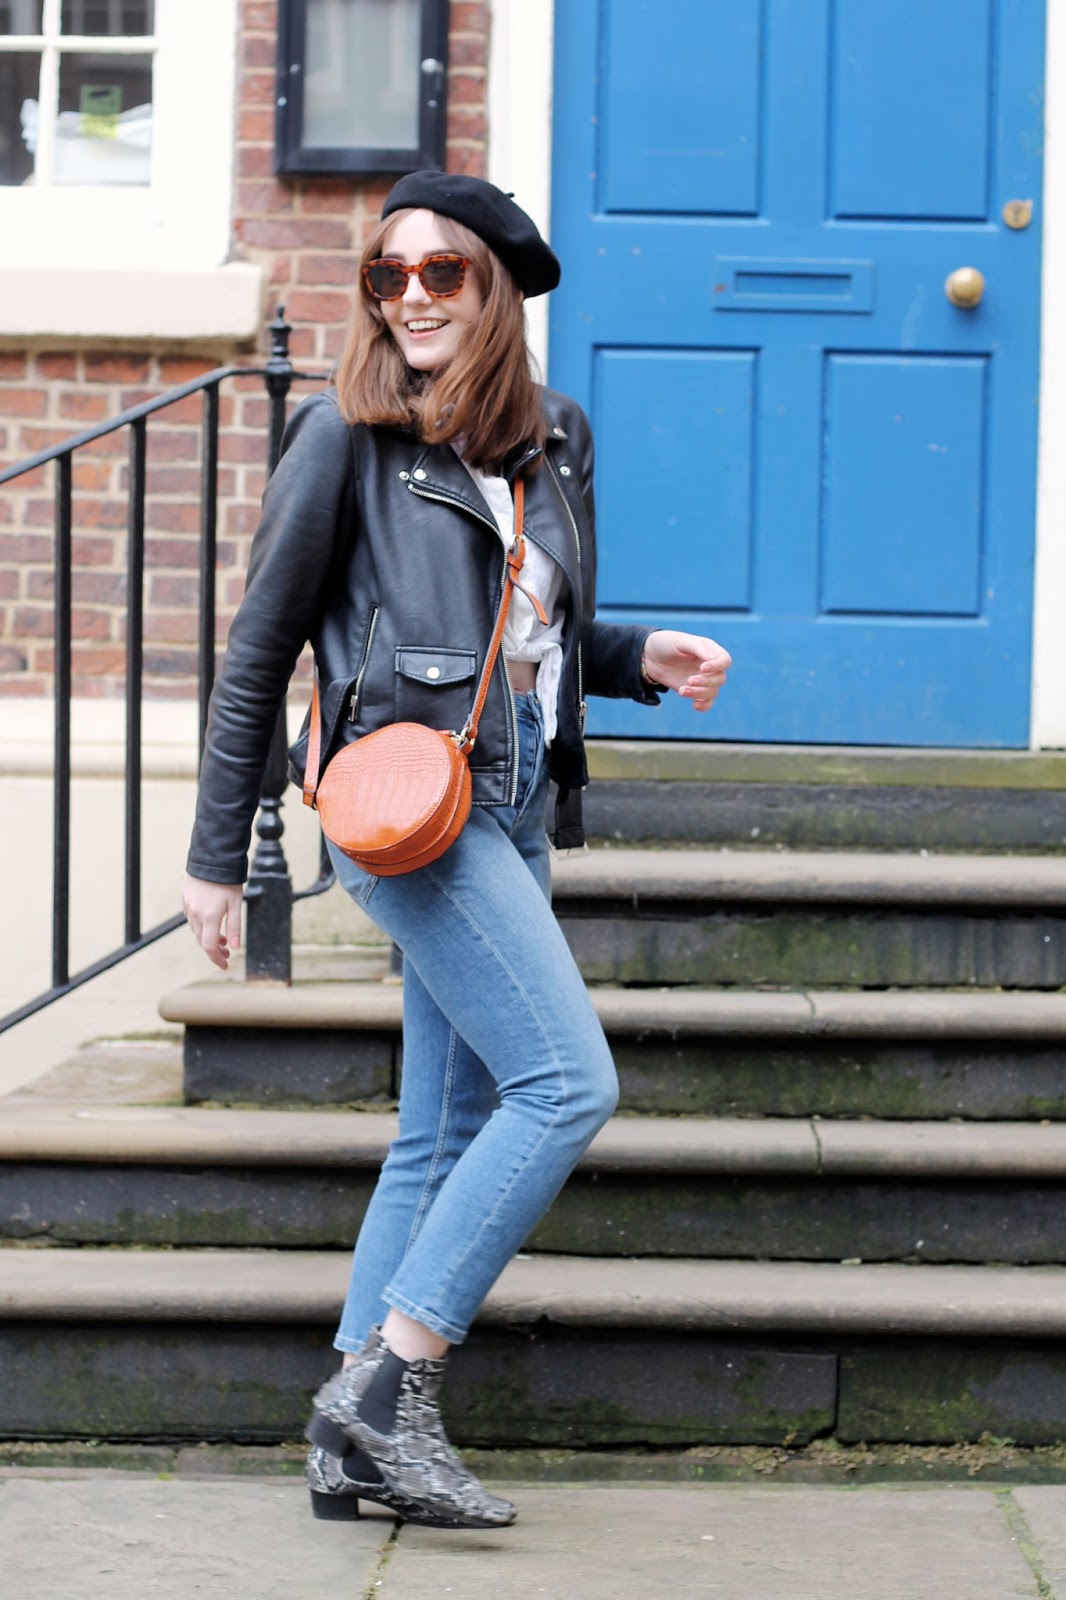 outfit style inspiration with black beret and faux leather biker jacket, white cotton shirt, blue slim leg jeans, orange circle cross body bag and snake print boots